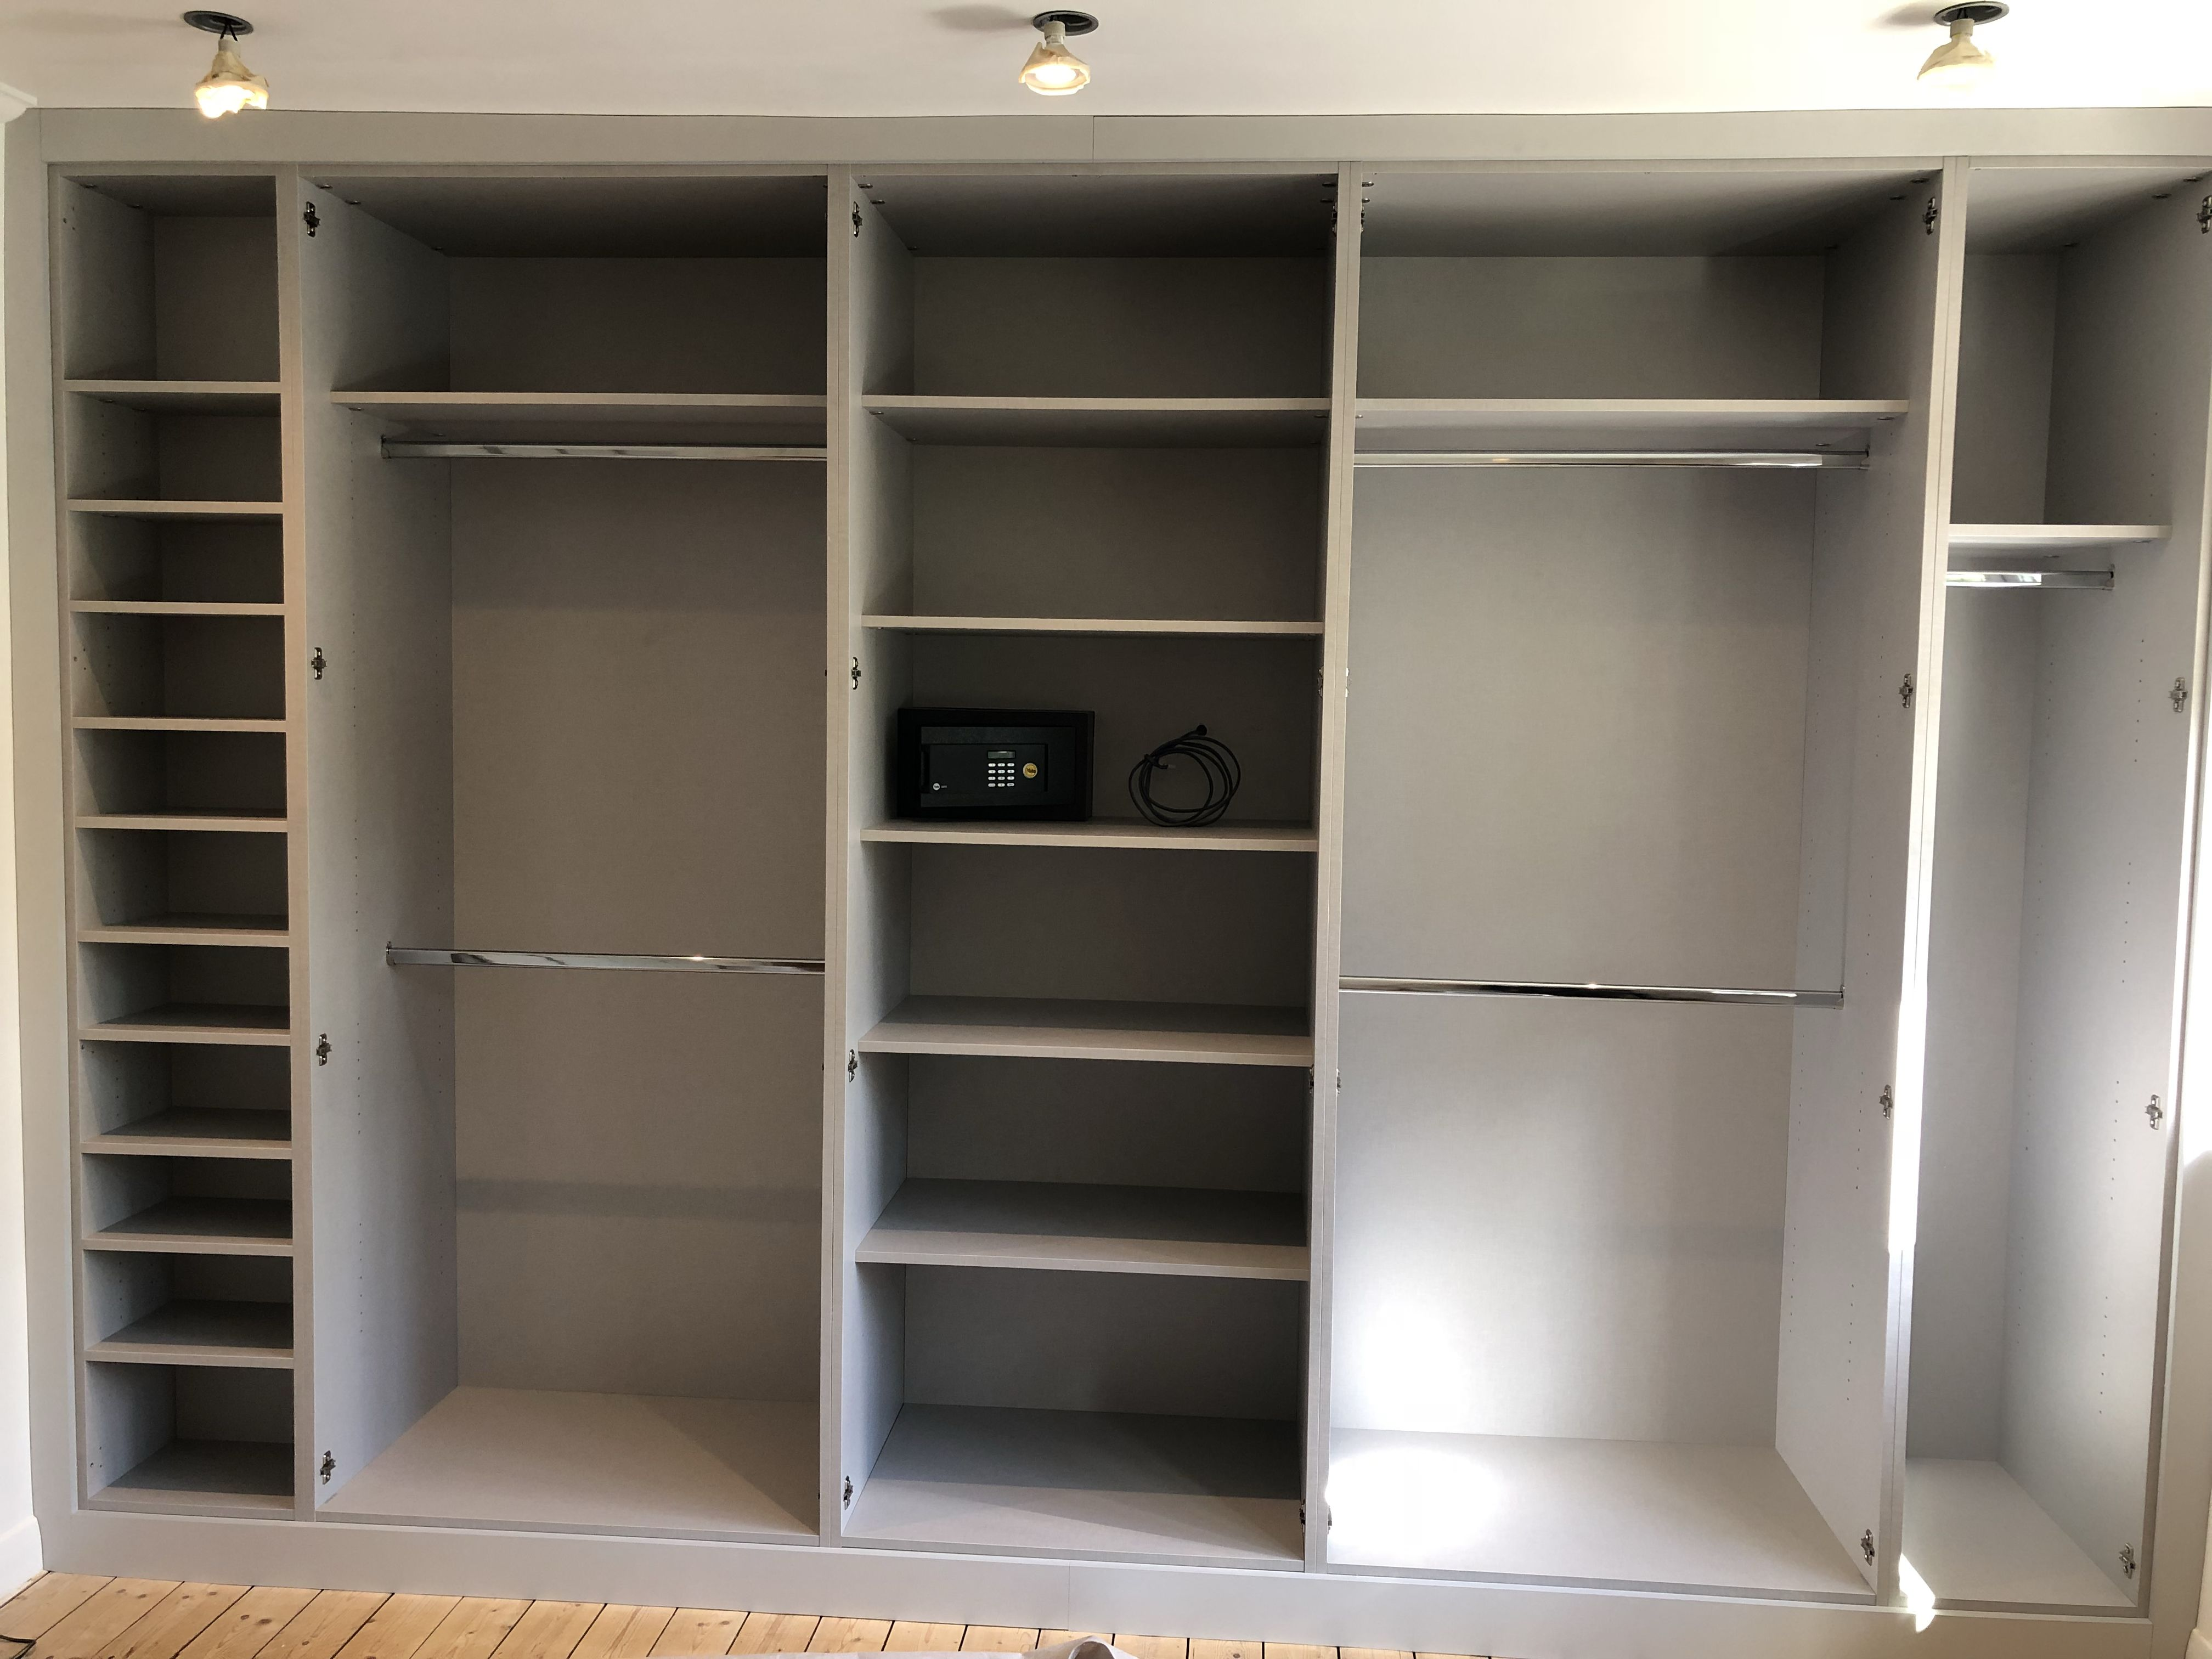 Fitted Wardrobe Ideas From Simply Fitted Wardrobes Fitted Wardrobe Interiors Fitted Wardrobes Diy Fitted Wardrobes